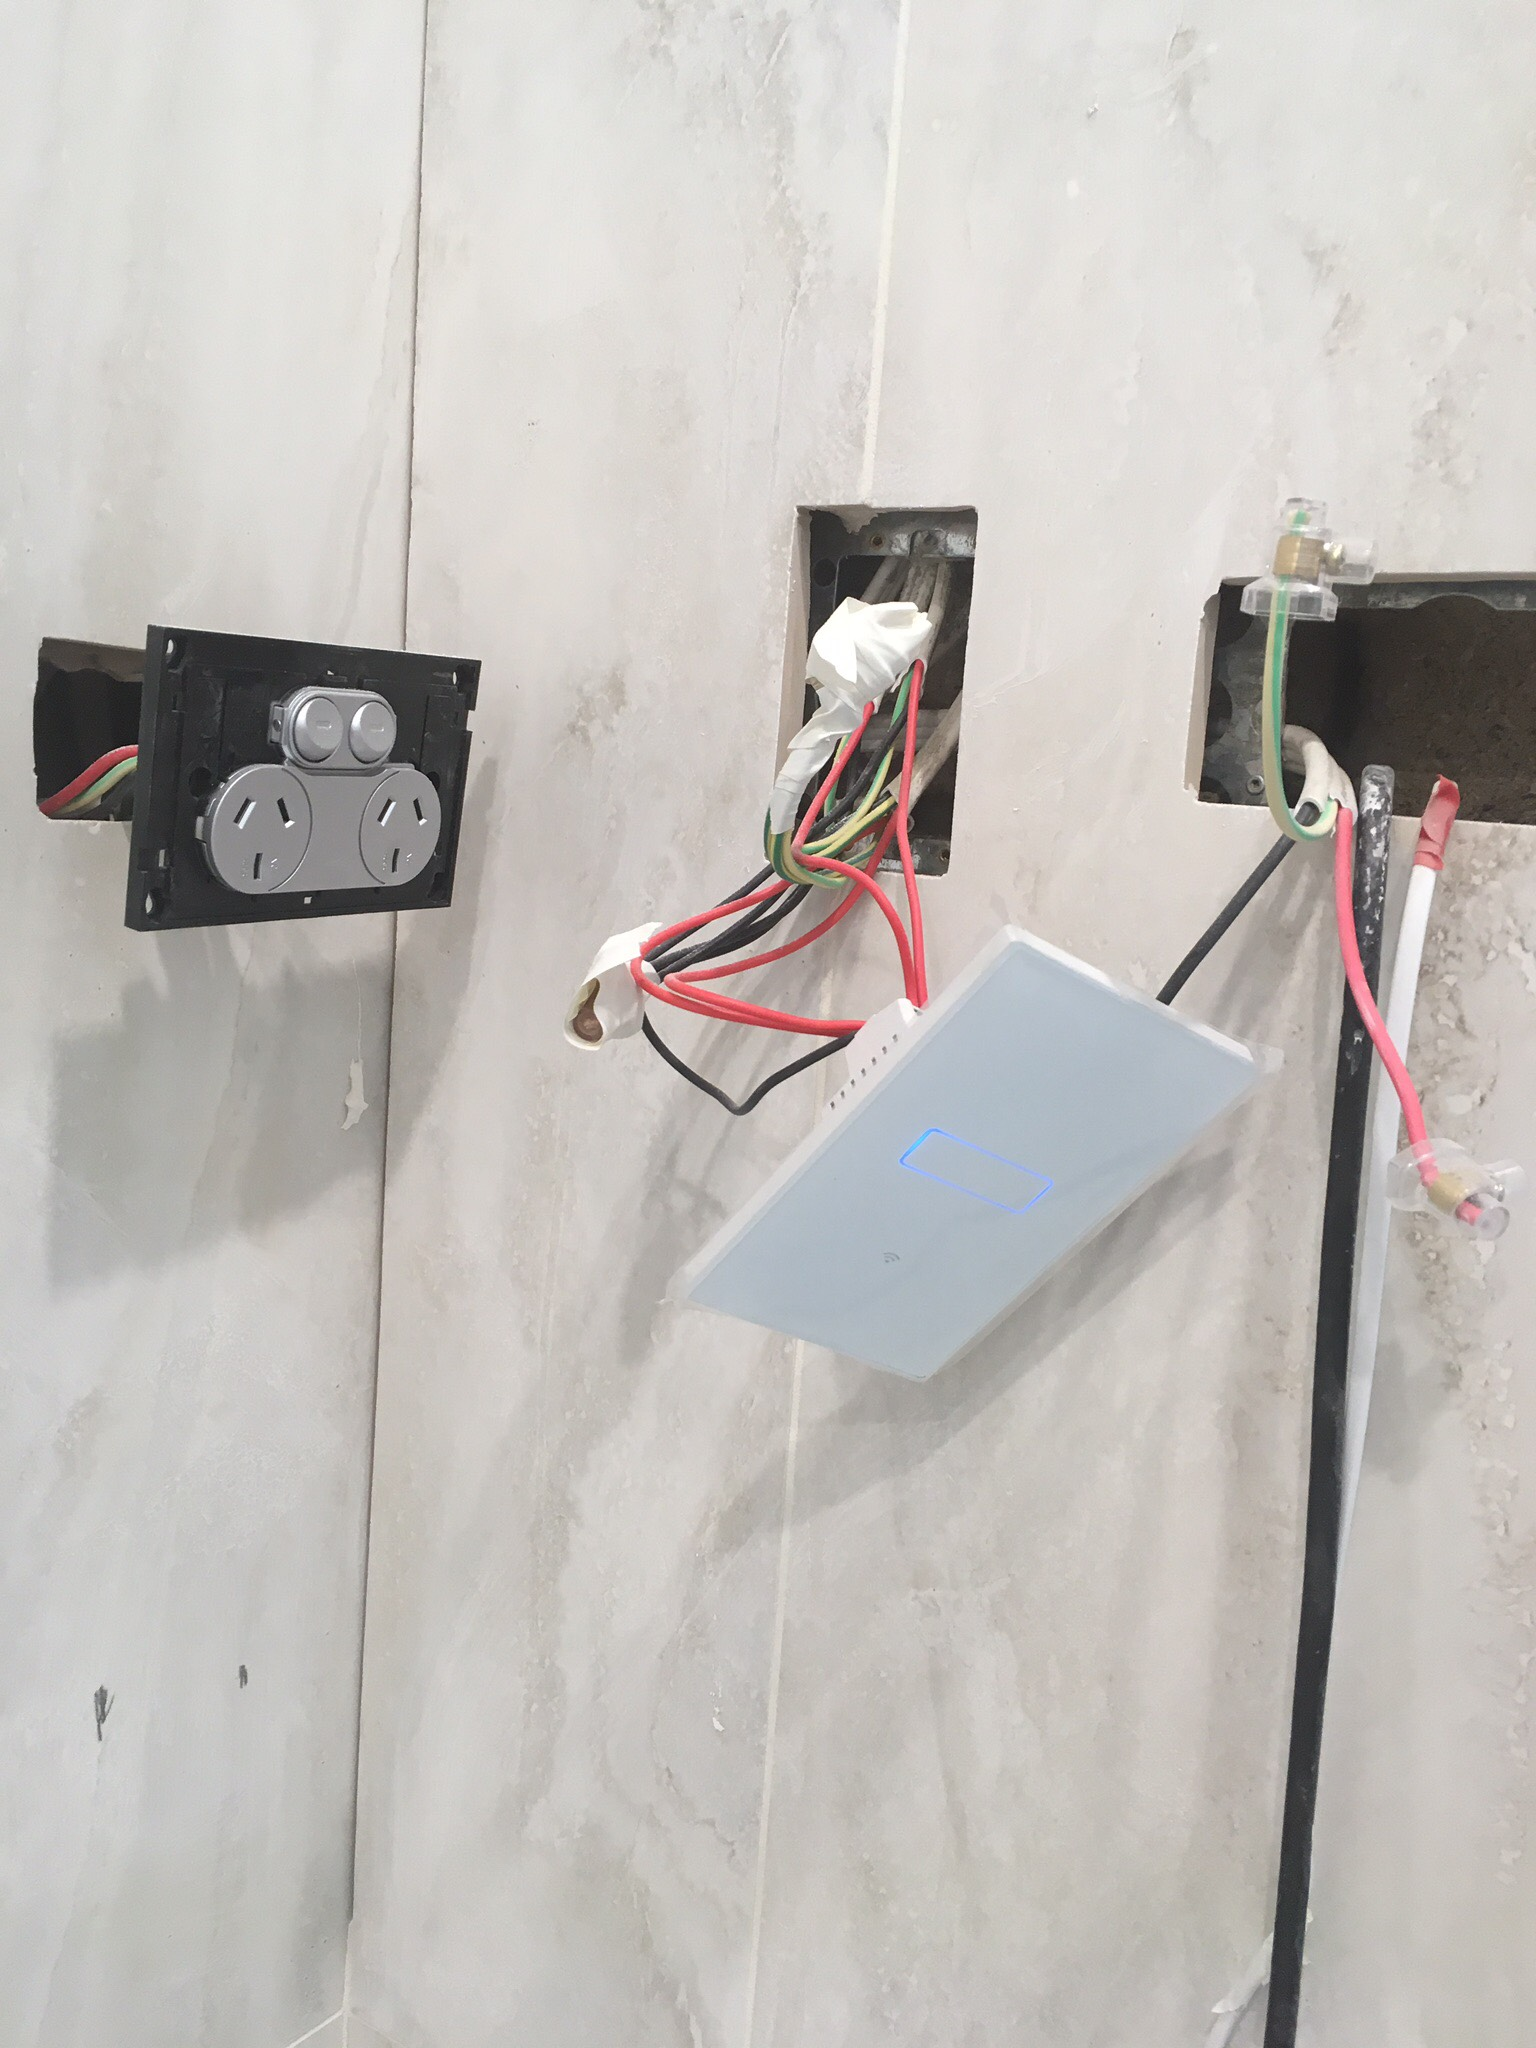 Smart light switch - Something you should have